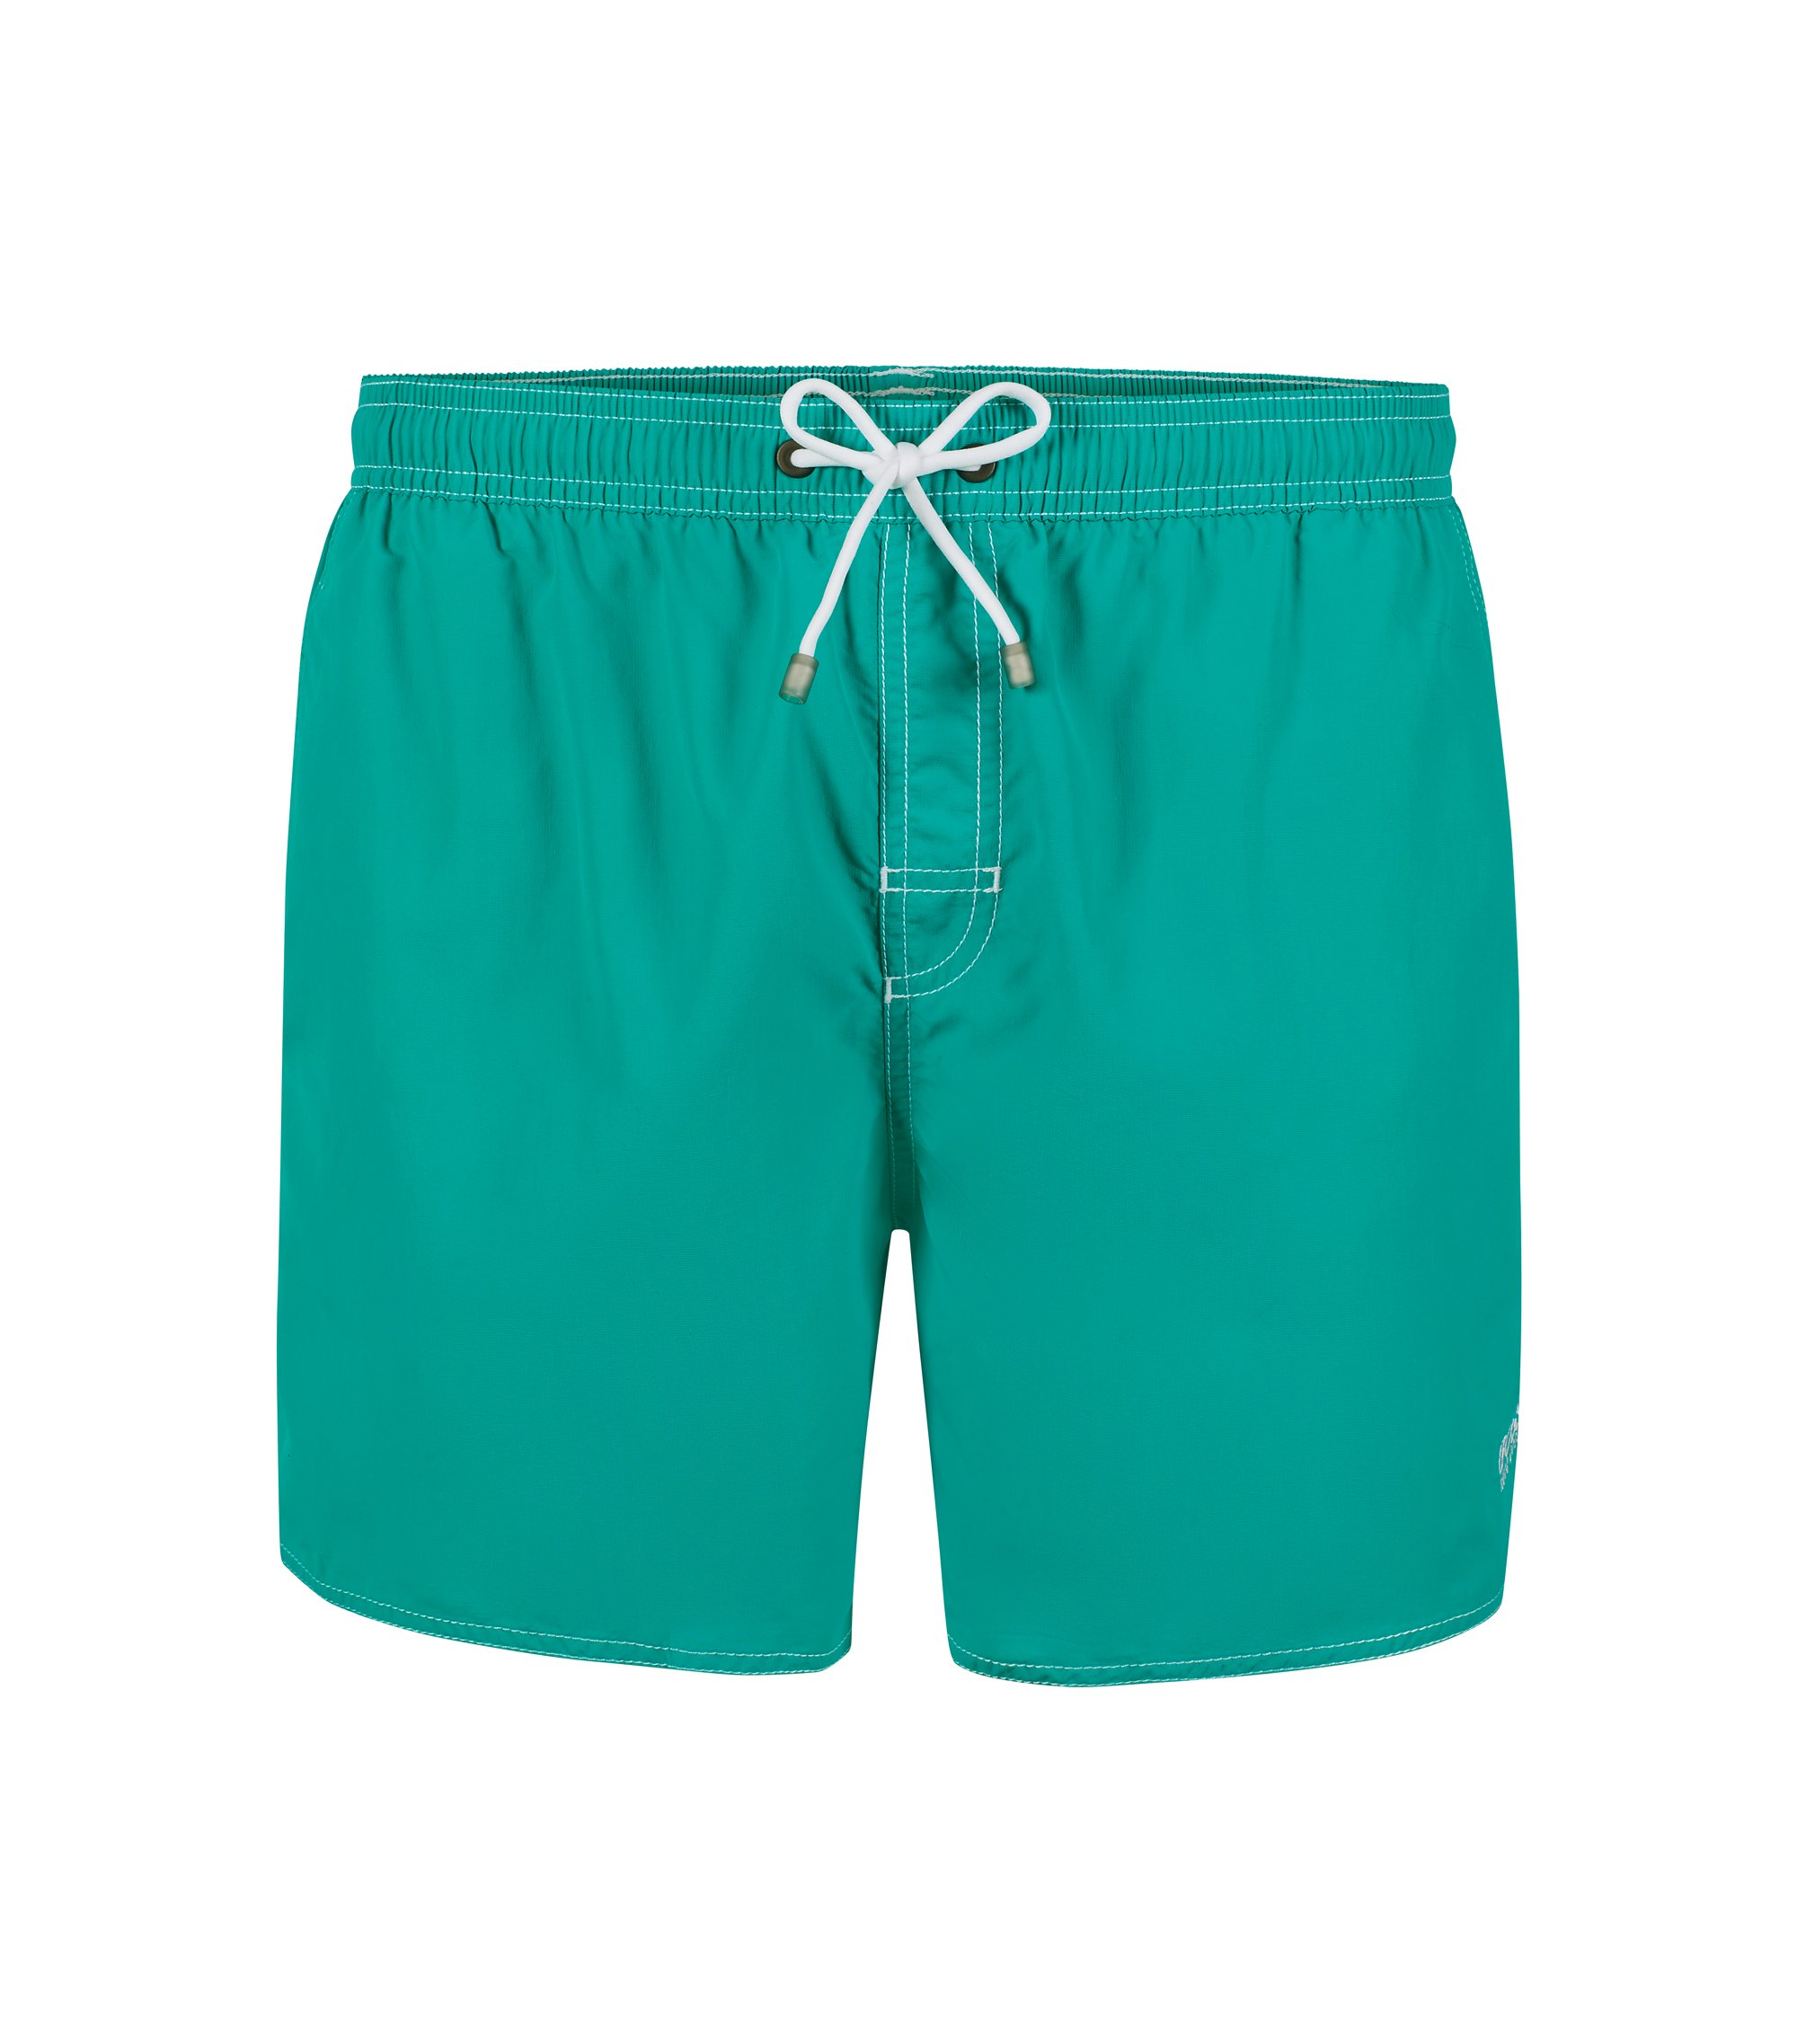 Quick Dry Swim Trunk   Lobster, Turquoise